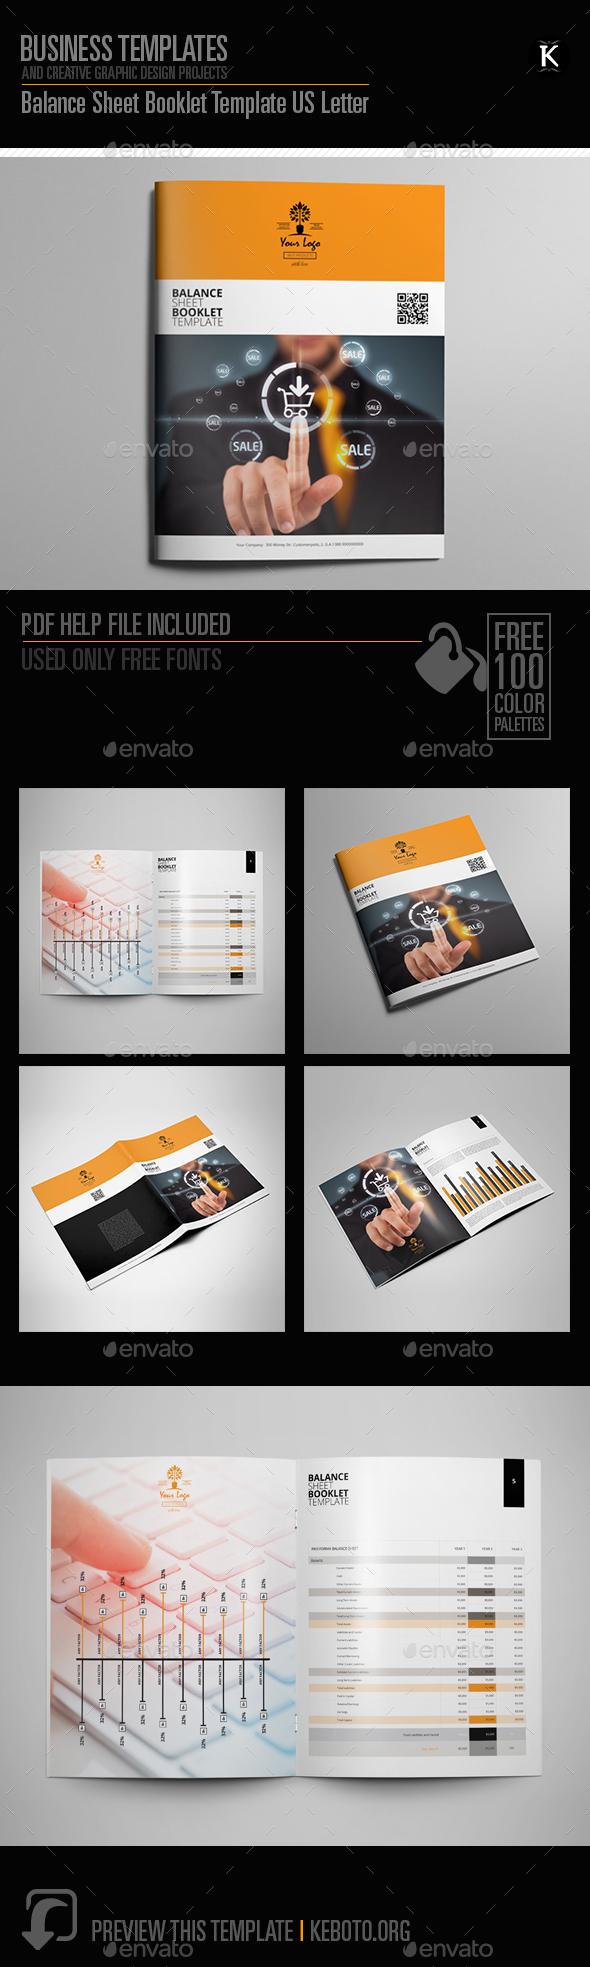 Balance Sheet Booklet Template US Letter - Miscellaneous Print Templates